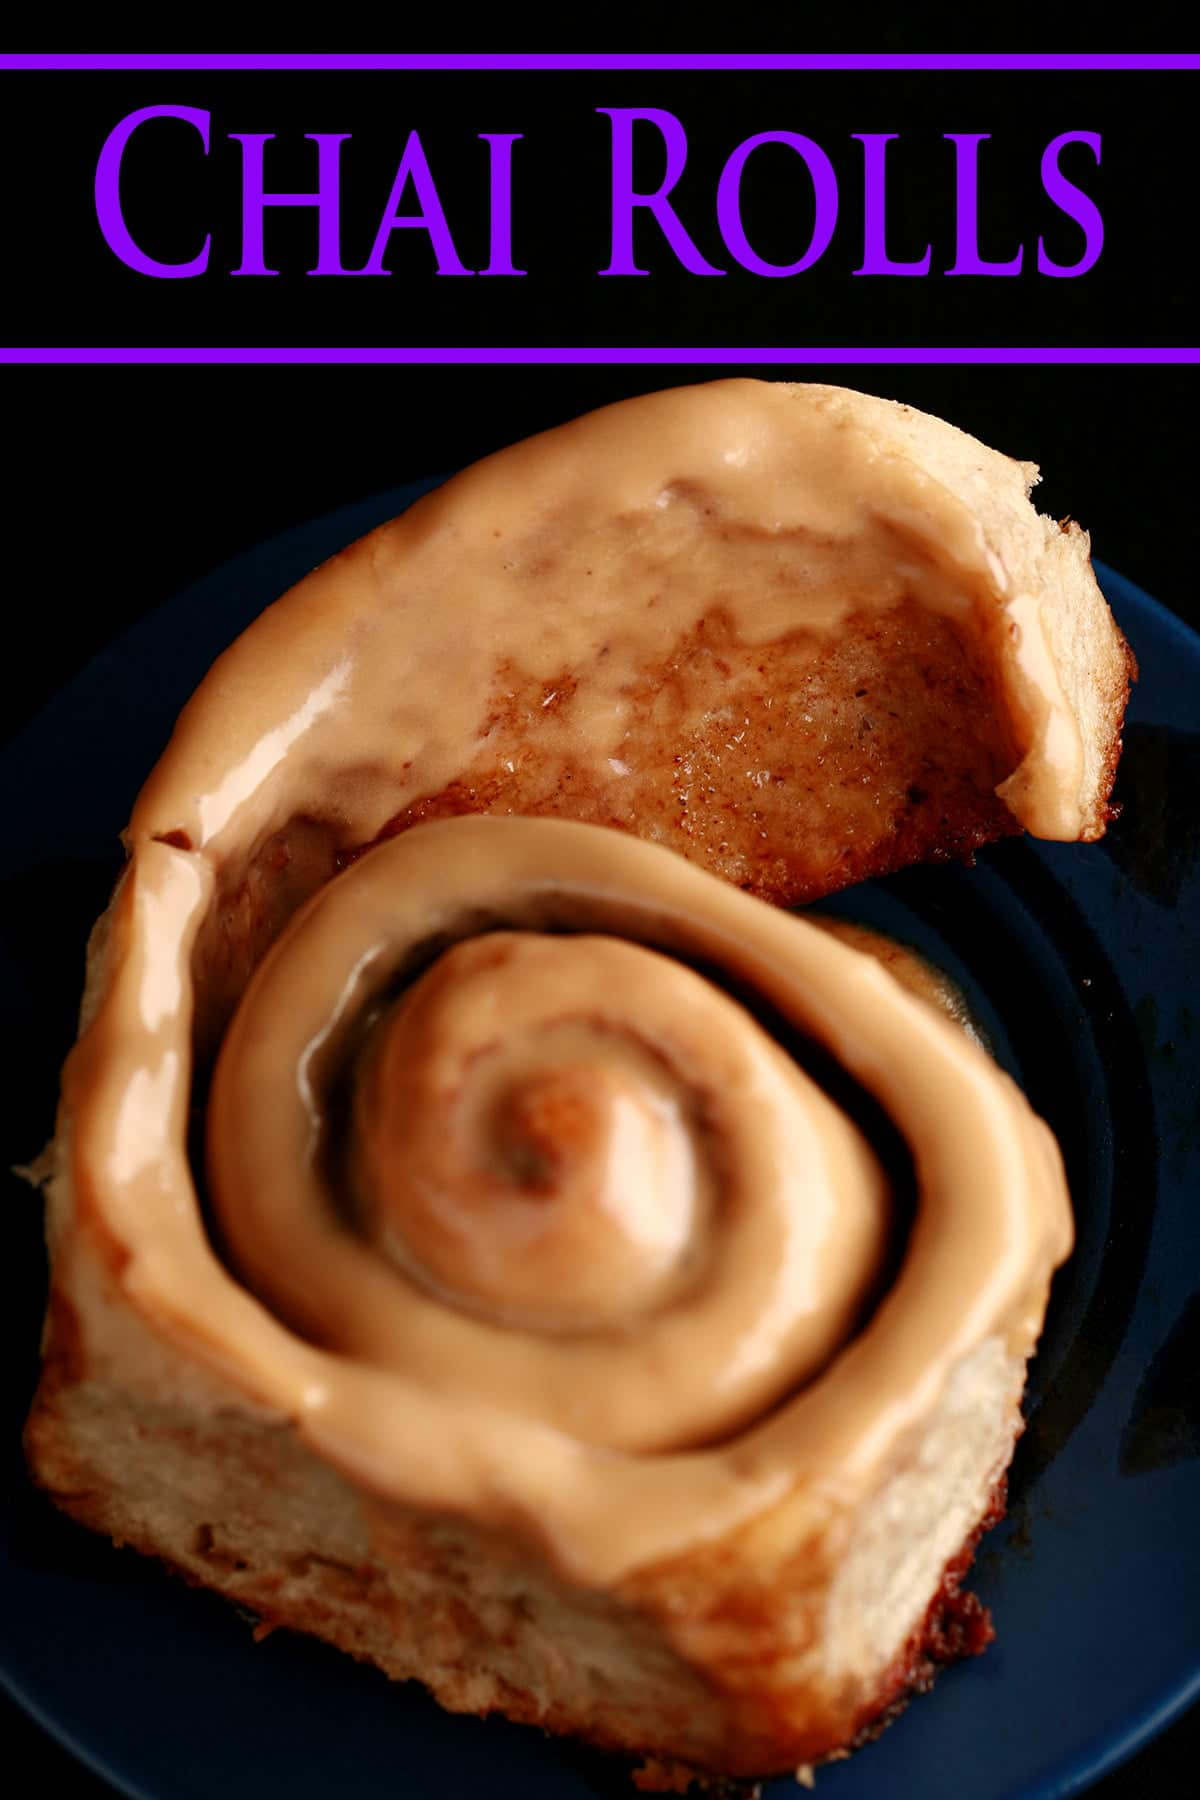 A close up view of a chai cinnamon bun, glazed with a light tan, tea flavoured frosting.